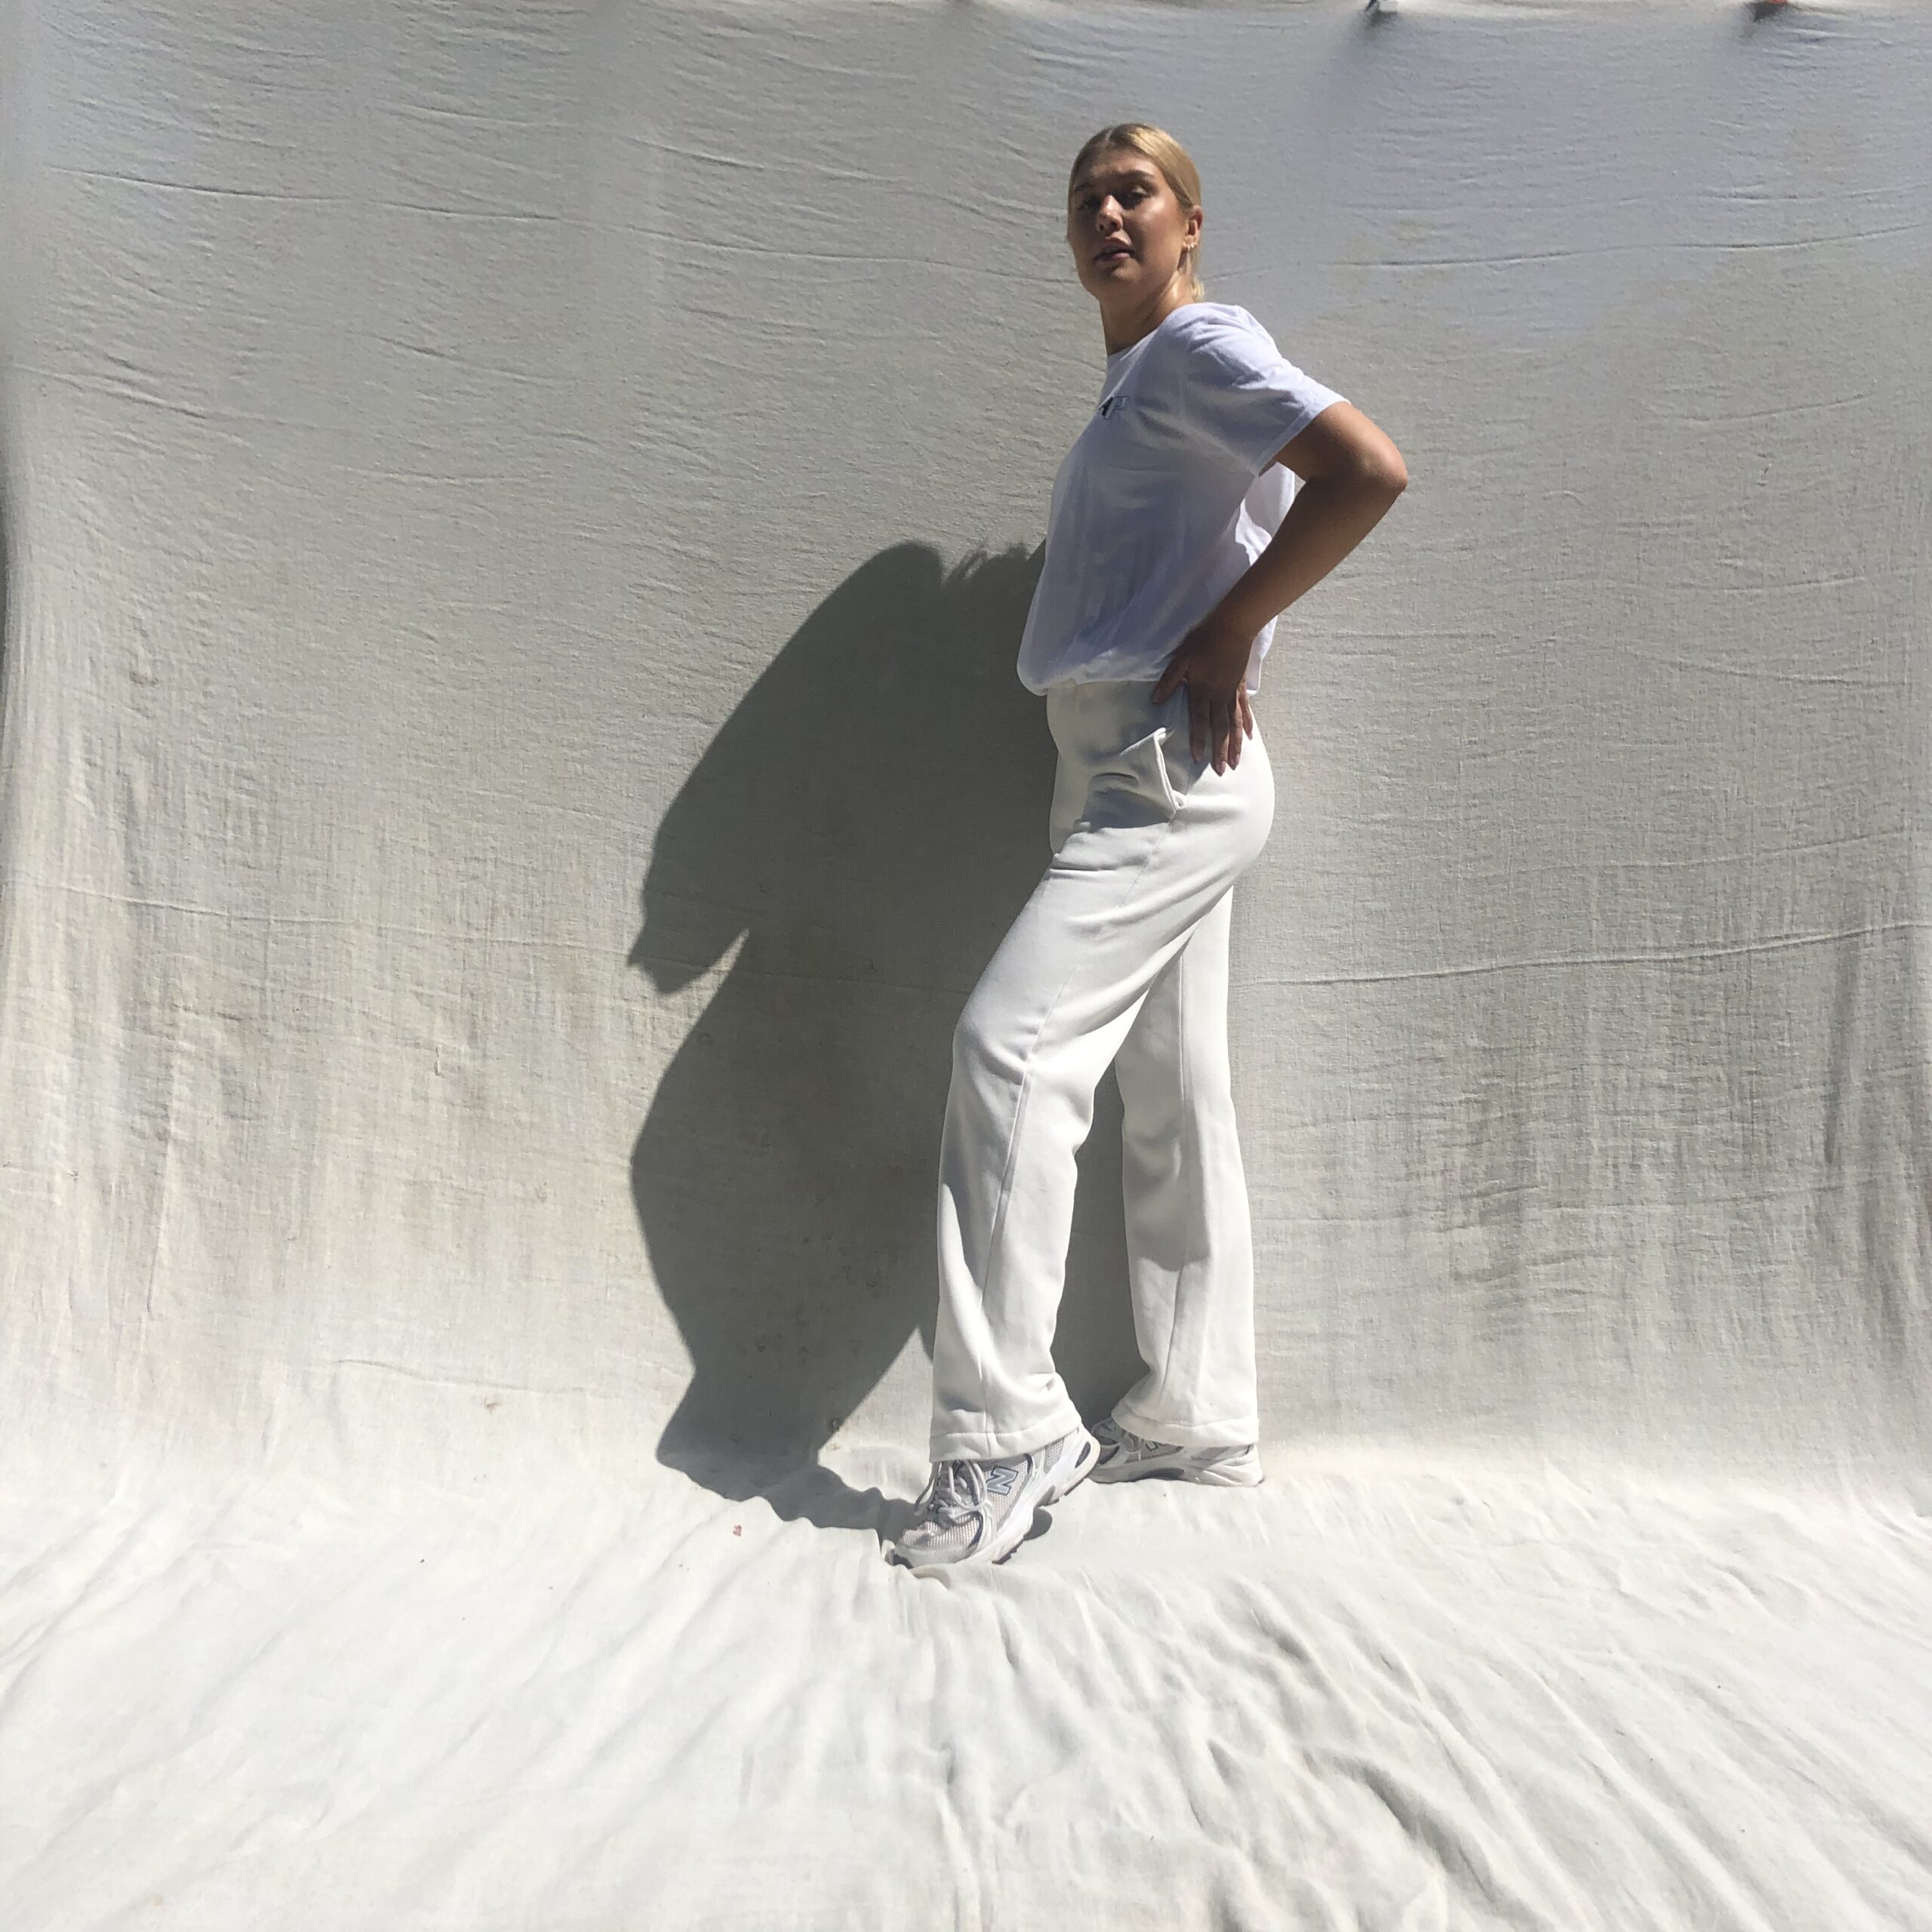 IMG 3780 scaled - Sport Edition T-shirt In White